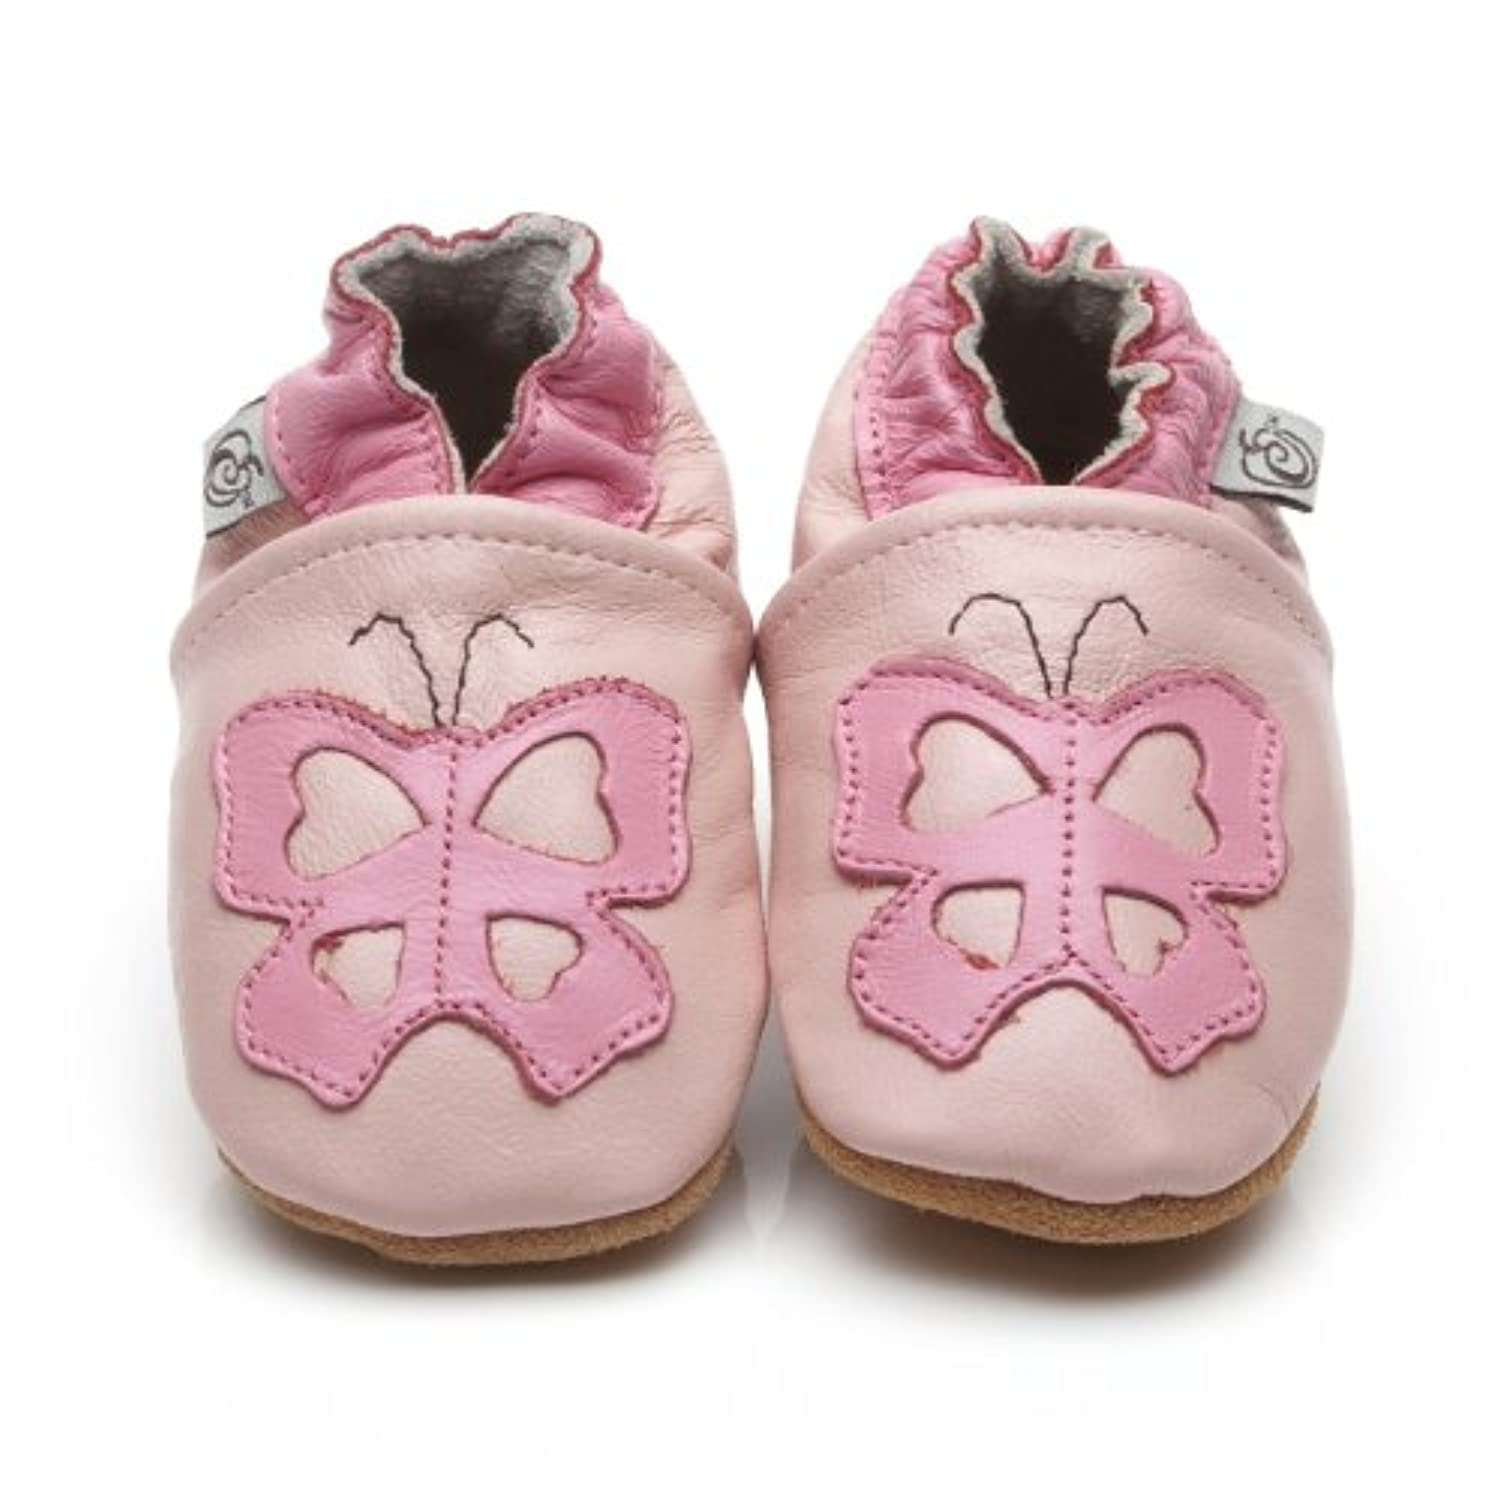 Soft Leather Baby Shoes Butterfly [ソフトレザーベビーシューズバタフライ] 3-4 years (16.5 cm)